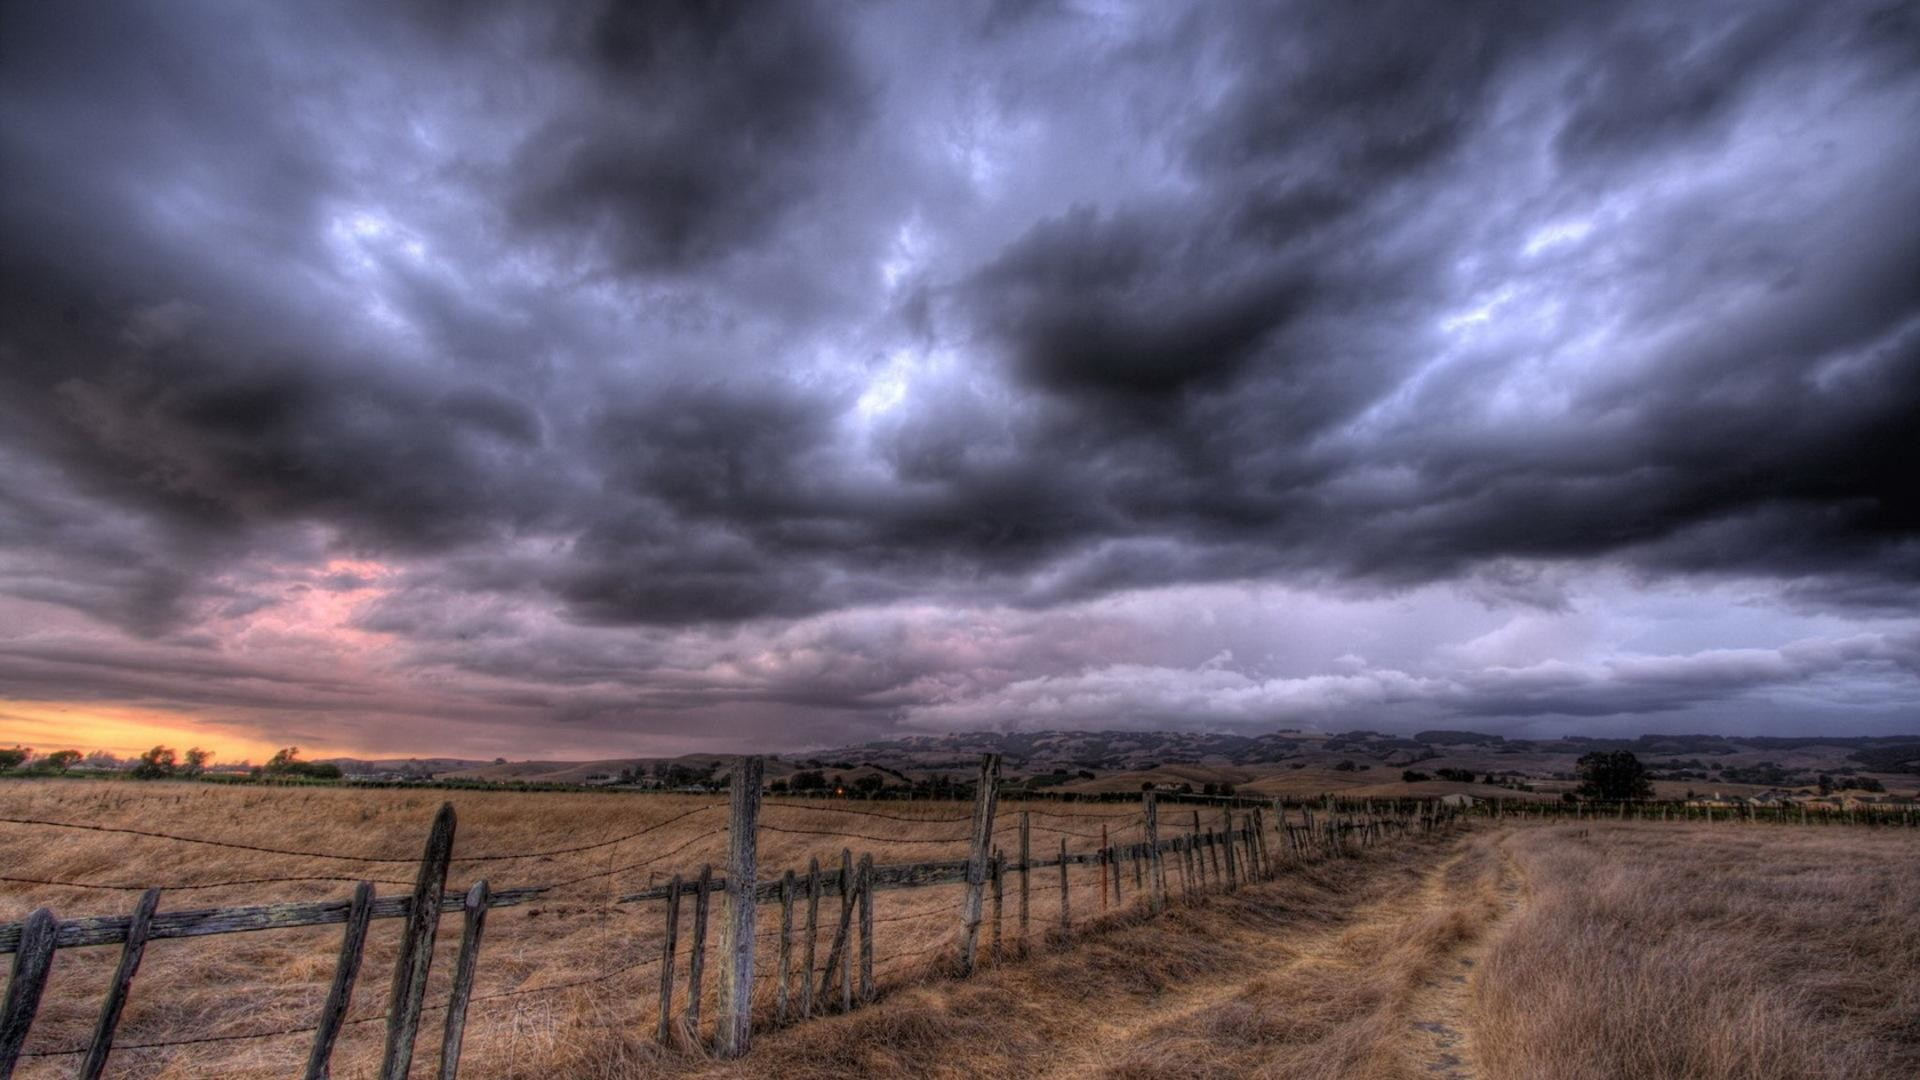 1920x1080 stormy skies hdr - (#133213) - High Quality and Resolution .